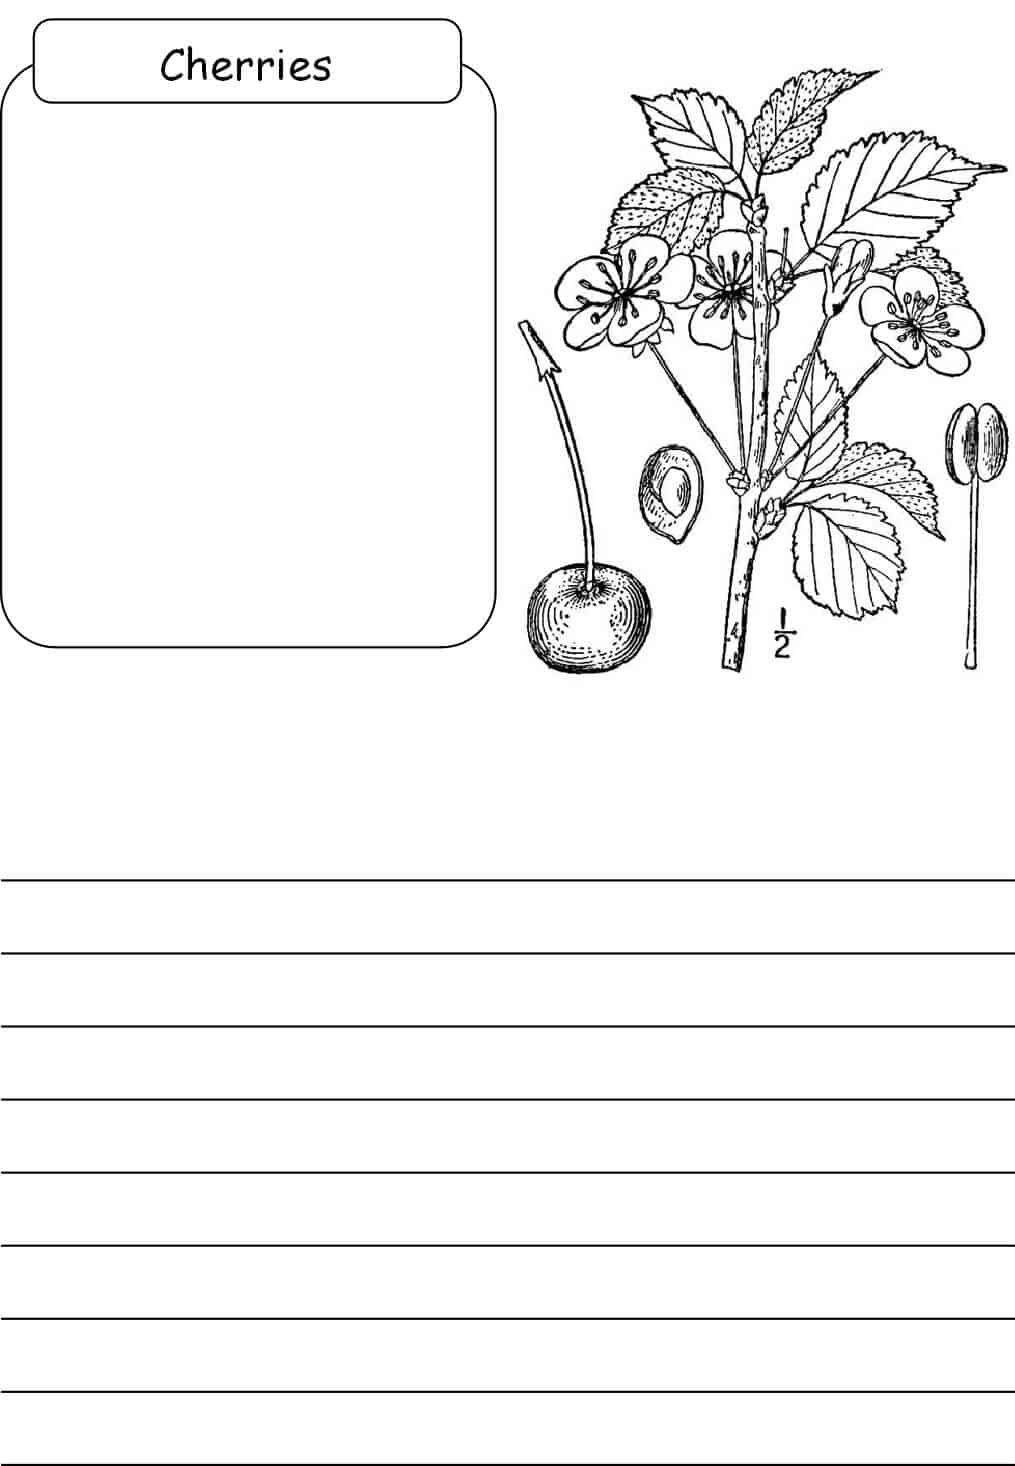 cherries-notebooking-page